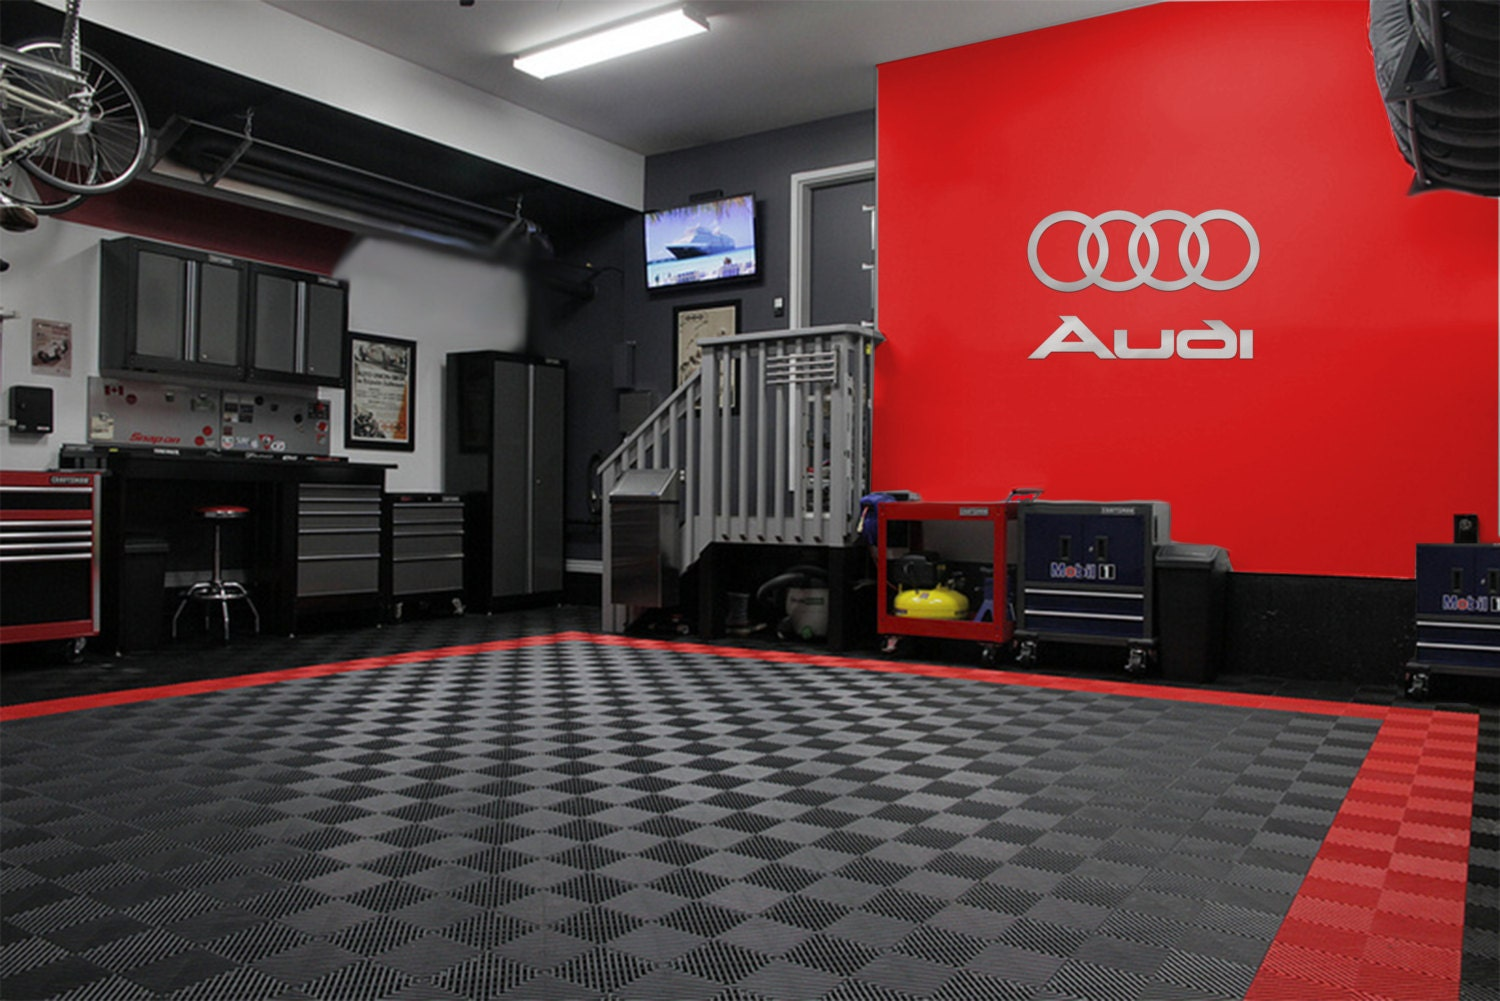 audi 4 rings logo combo garage sign brushed silver. Black Bedroom Furniture Sets. Home Design Ideas